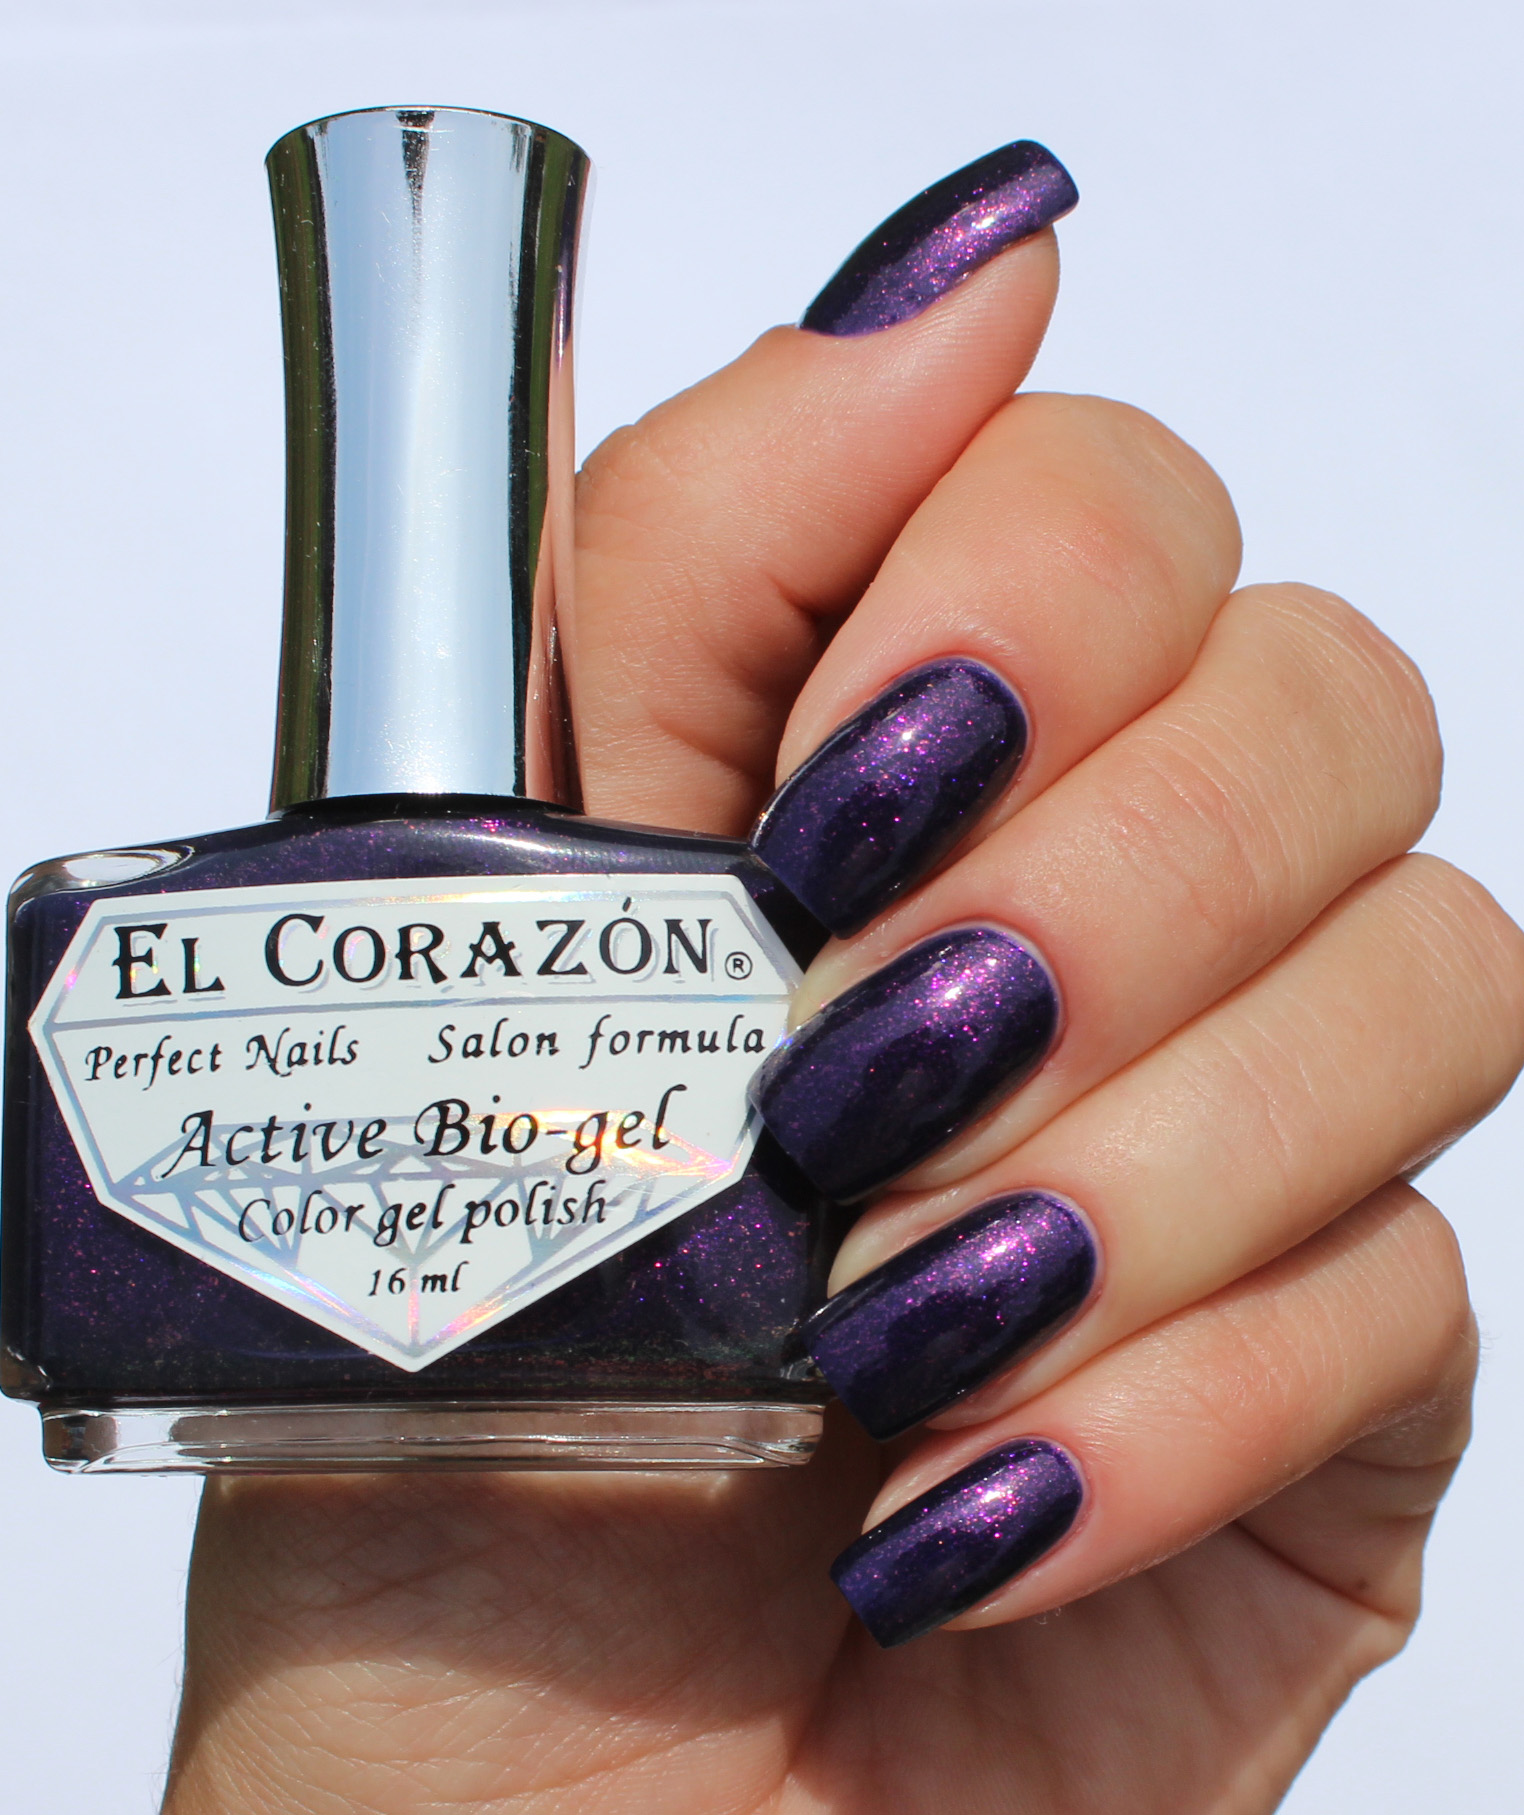 EL Corazon Active Bio-gel Color gel polish Magic №423/578 Magic oriental night